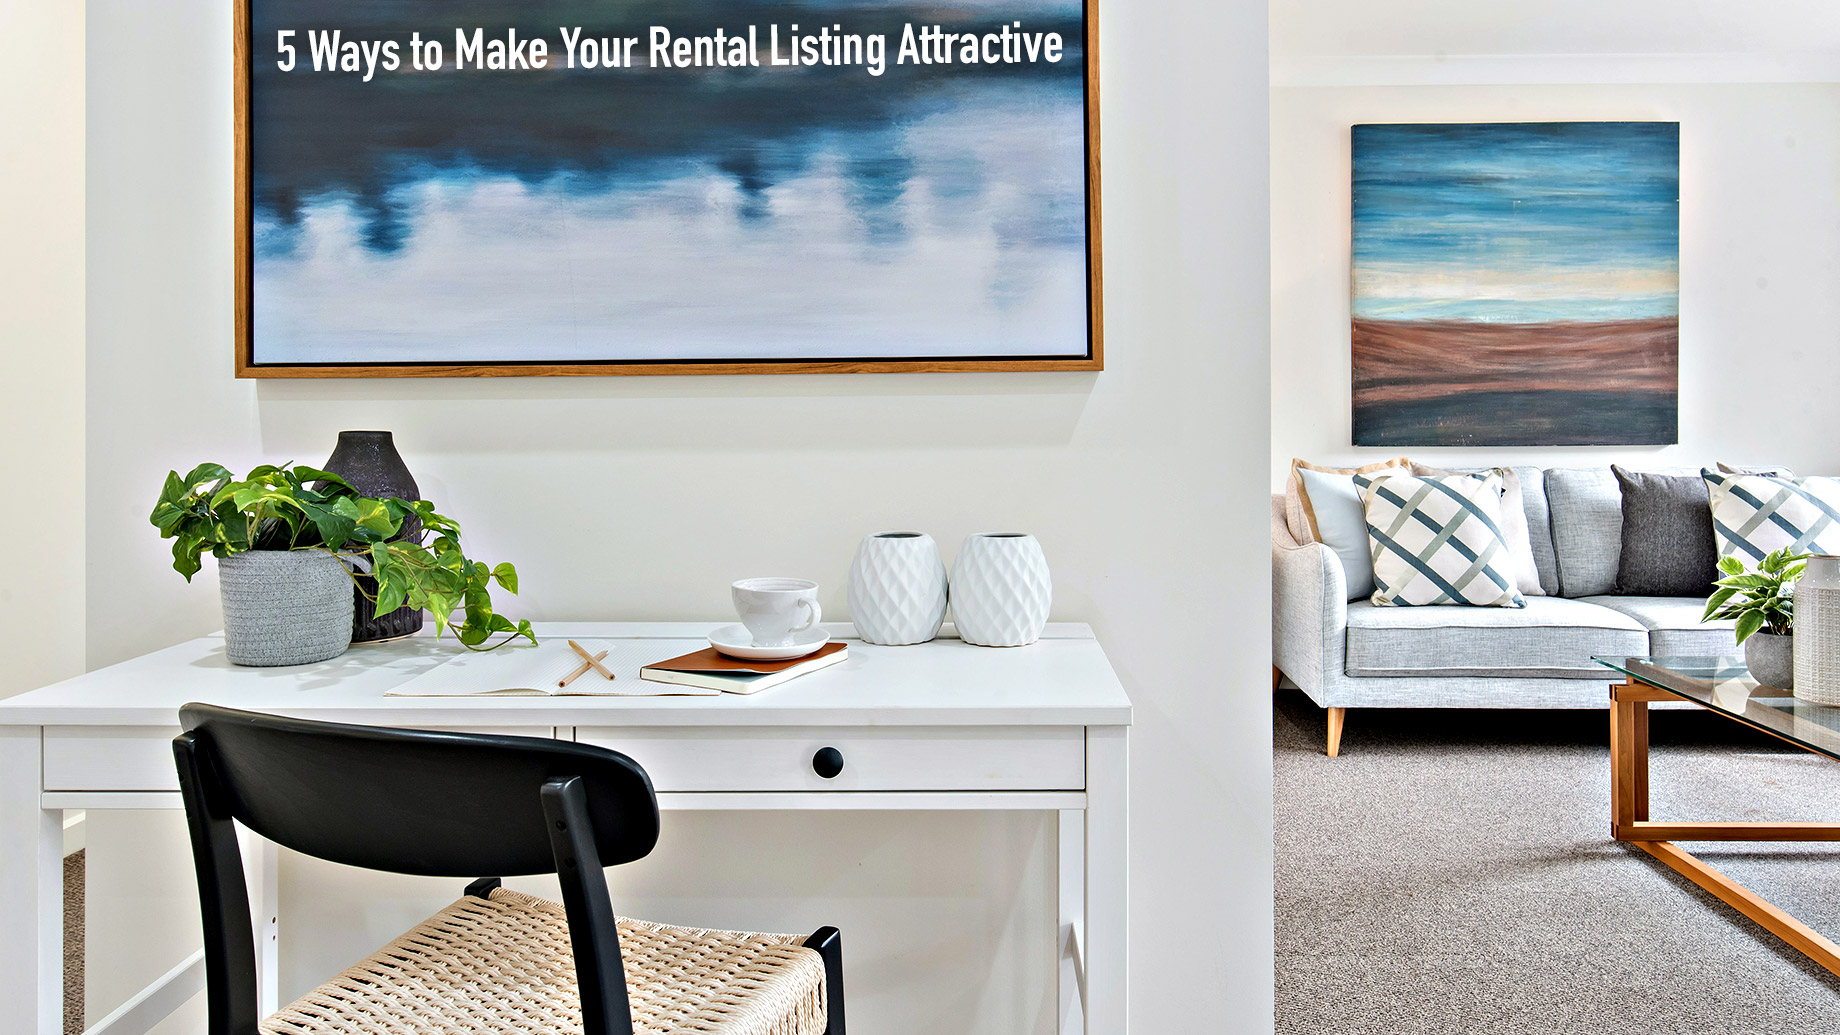 5 Ways to Make Your Rental Listing Attractive